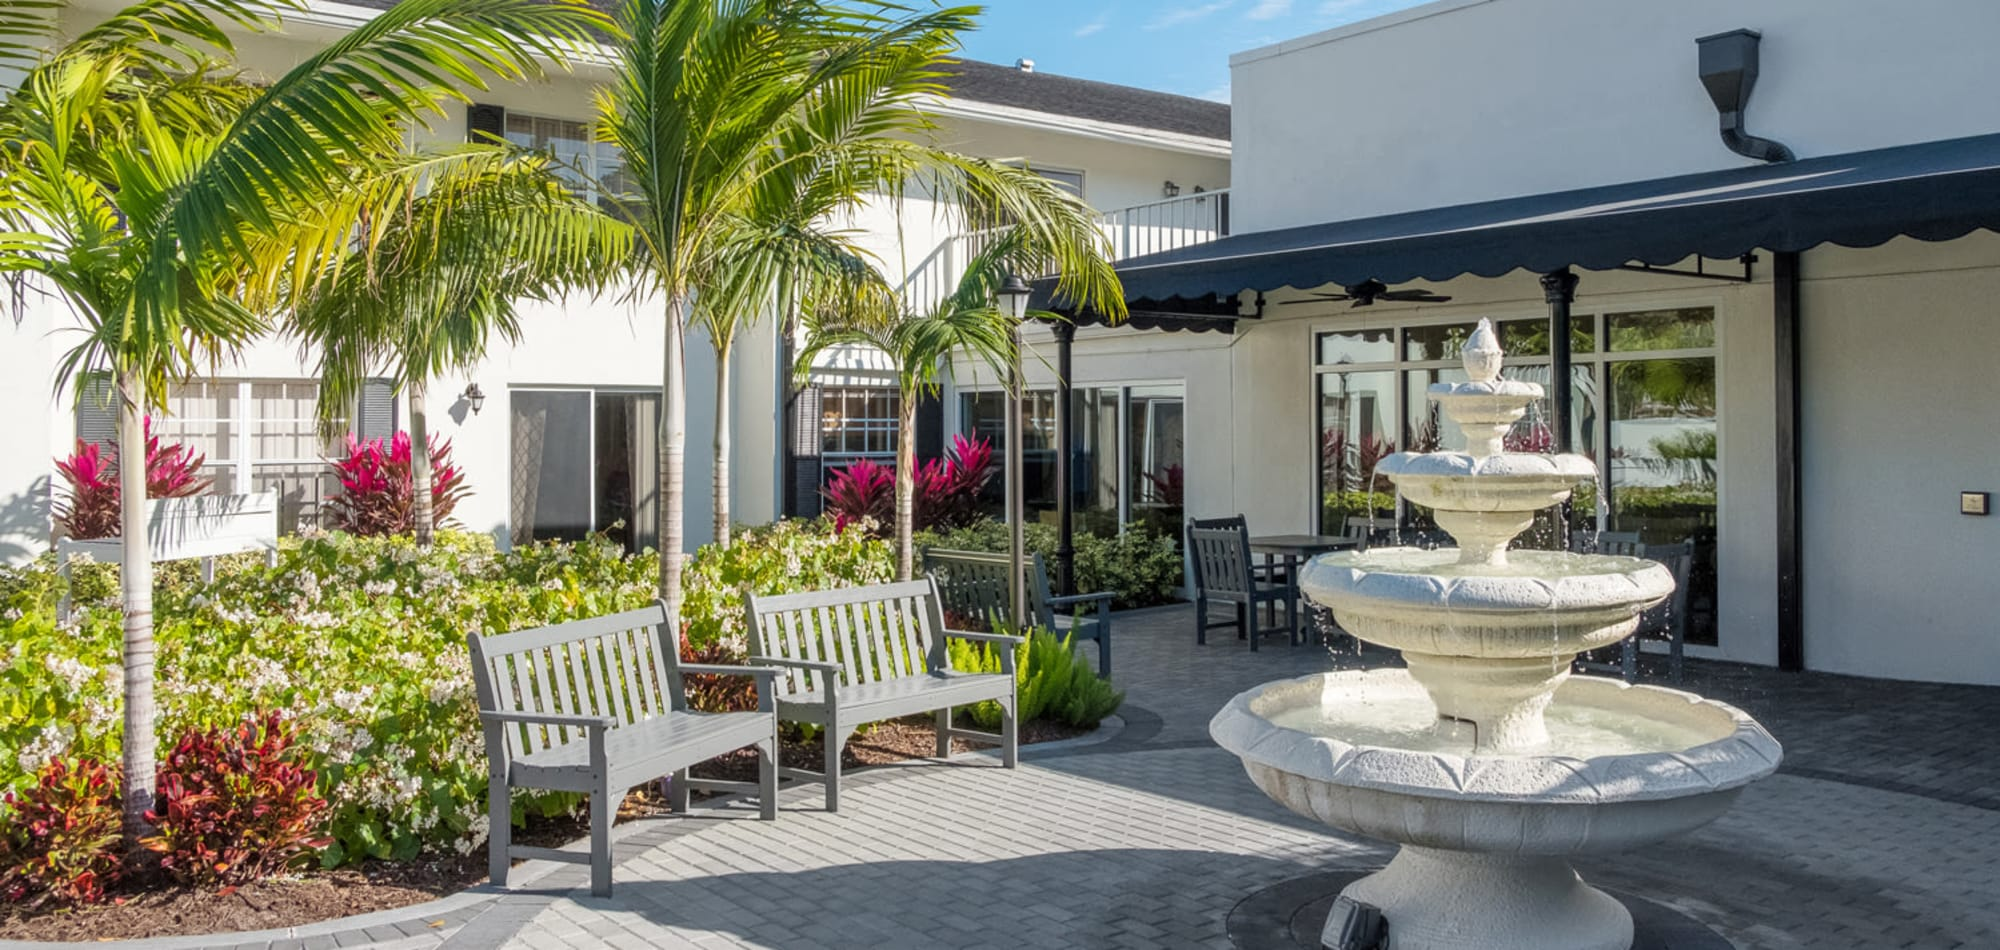 Grand Villa of Delray East senior living in Florida